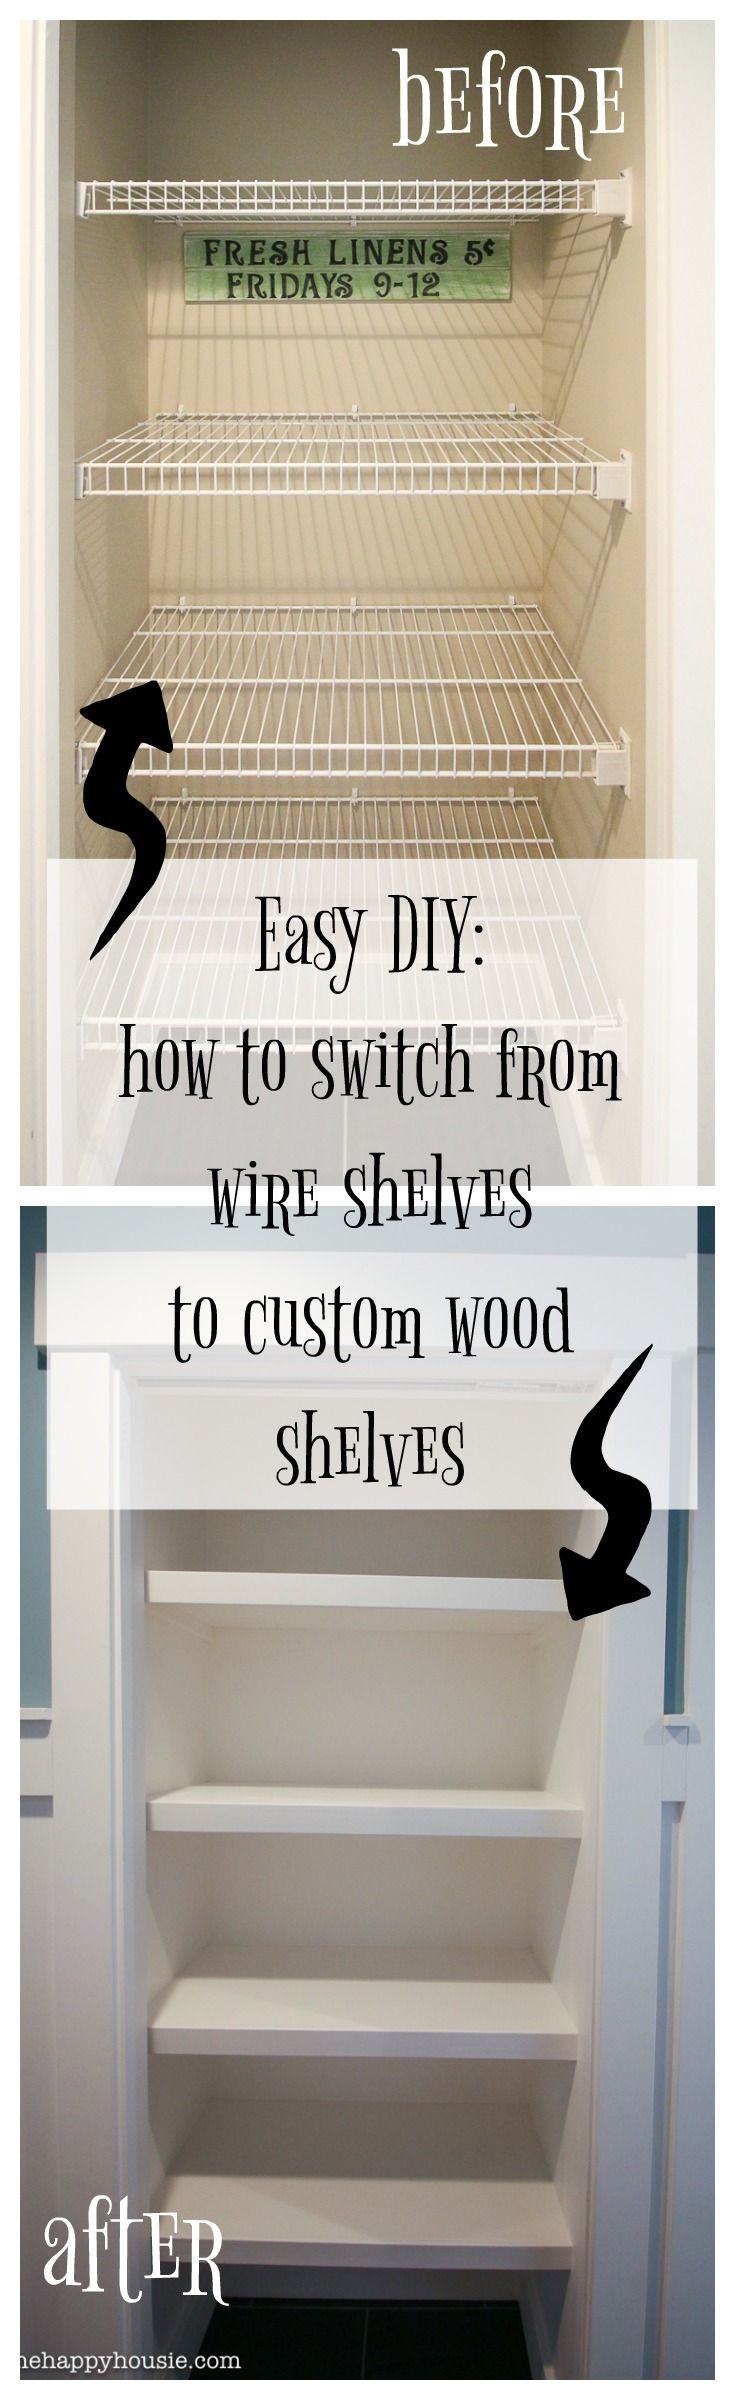 How to Replace Wire Shelves with DIY Custom Wood Shelves | Pinterest ...